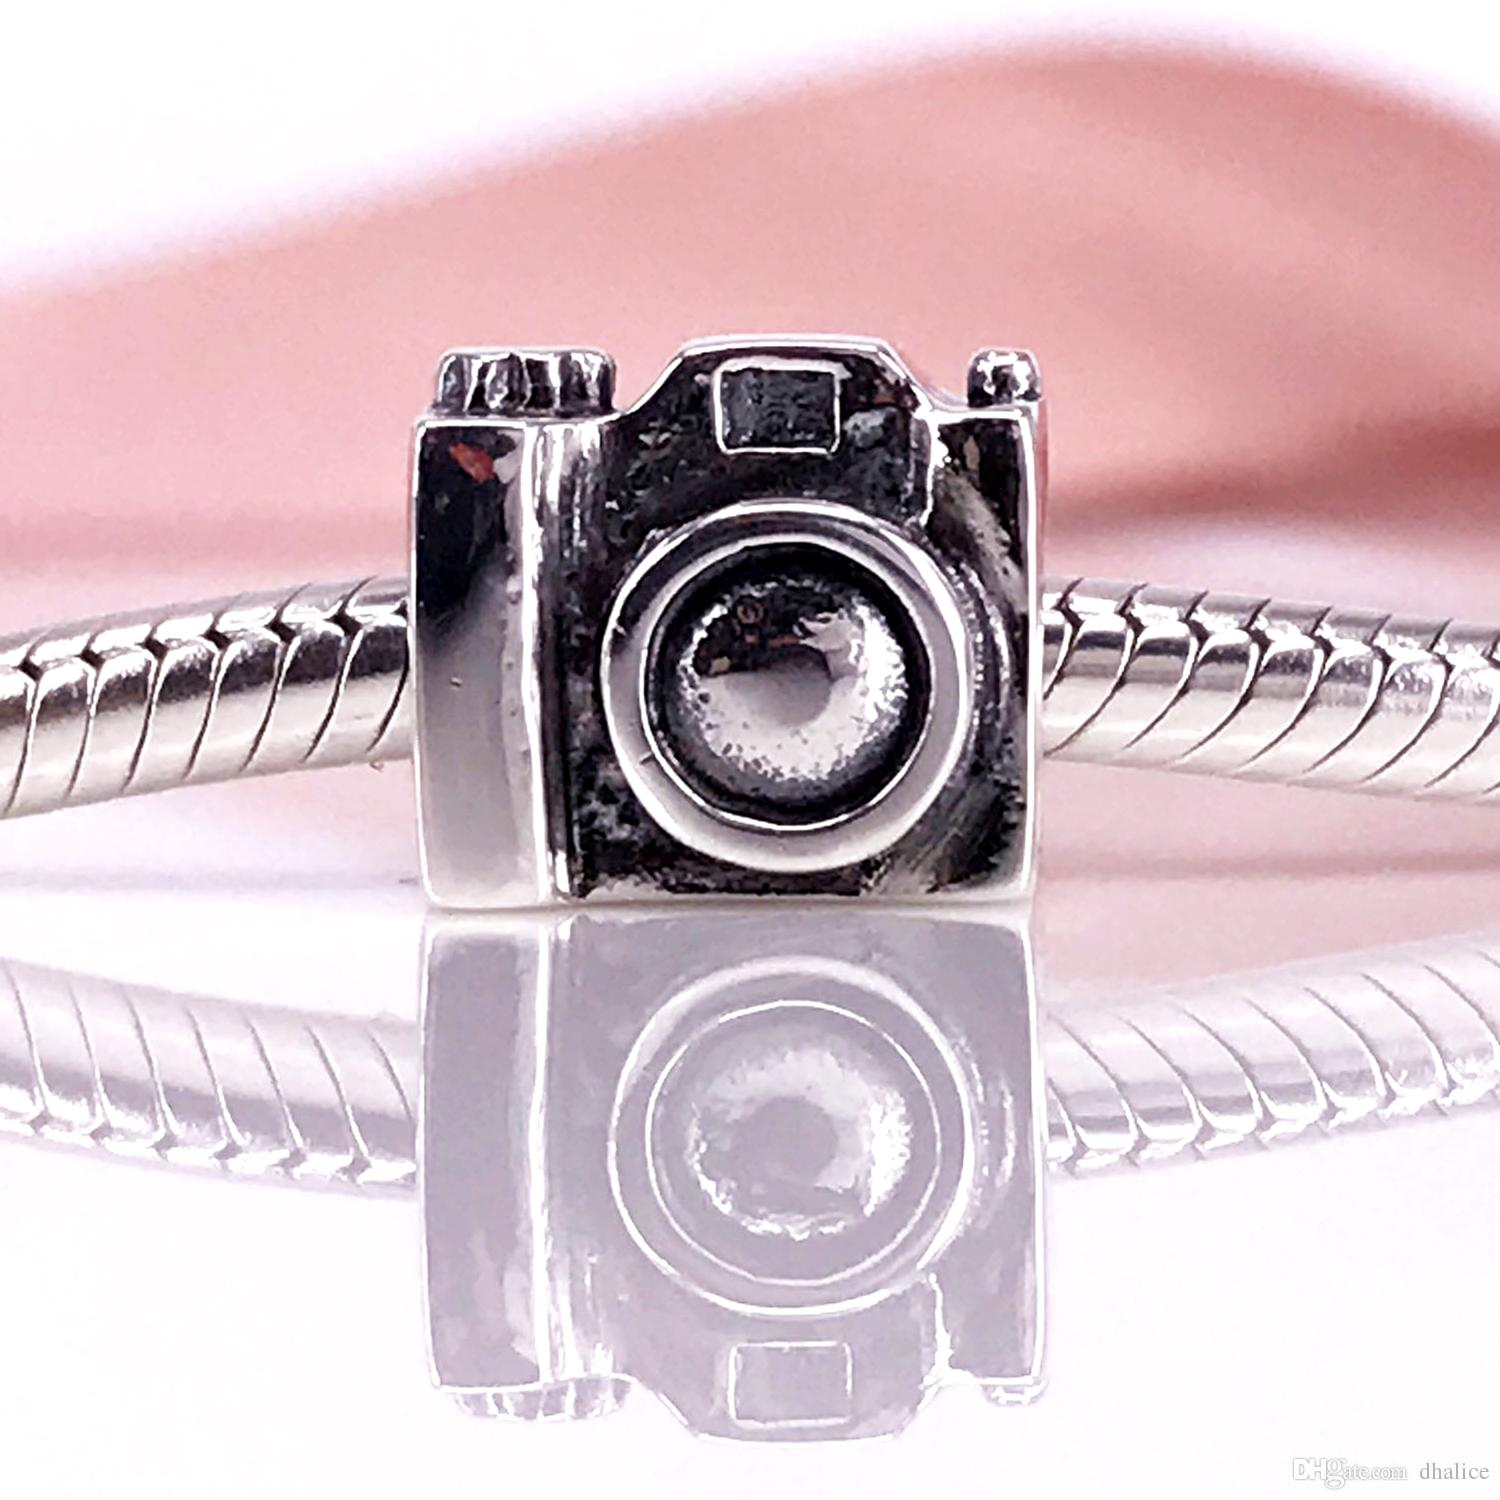 1807cfcebb4 2019 Authentic 925 Sterling Silver Camera Charm Fit DIY Pandora Bracelet  And Necklace 790961 From Dhalice